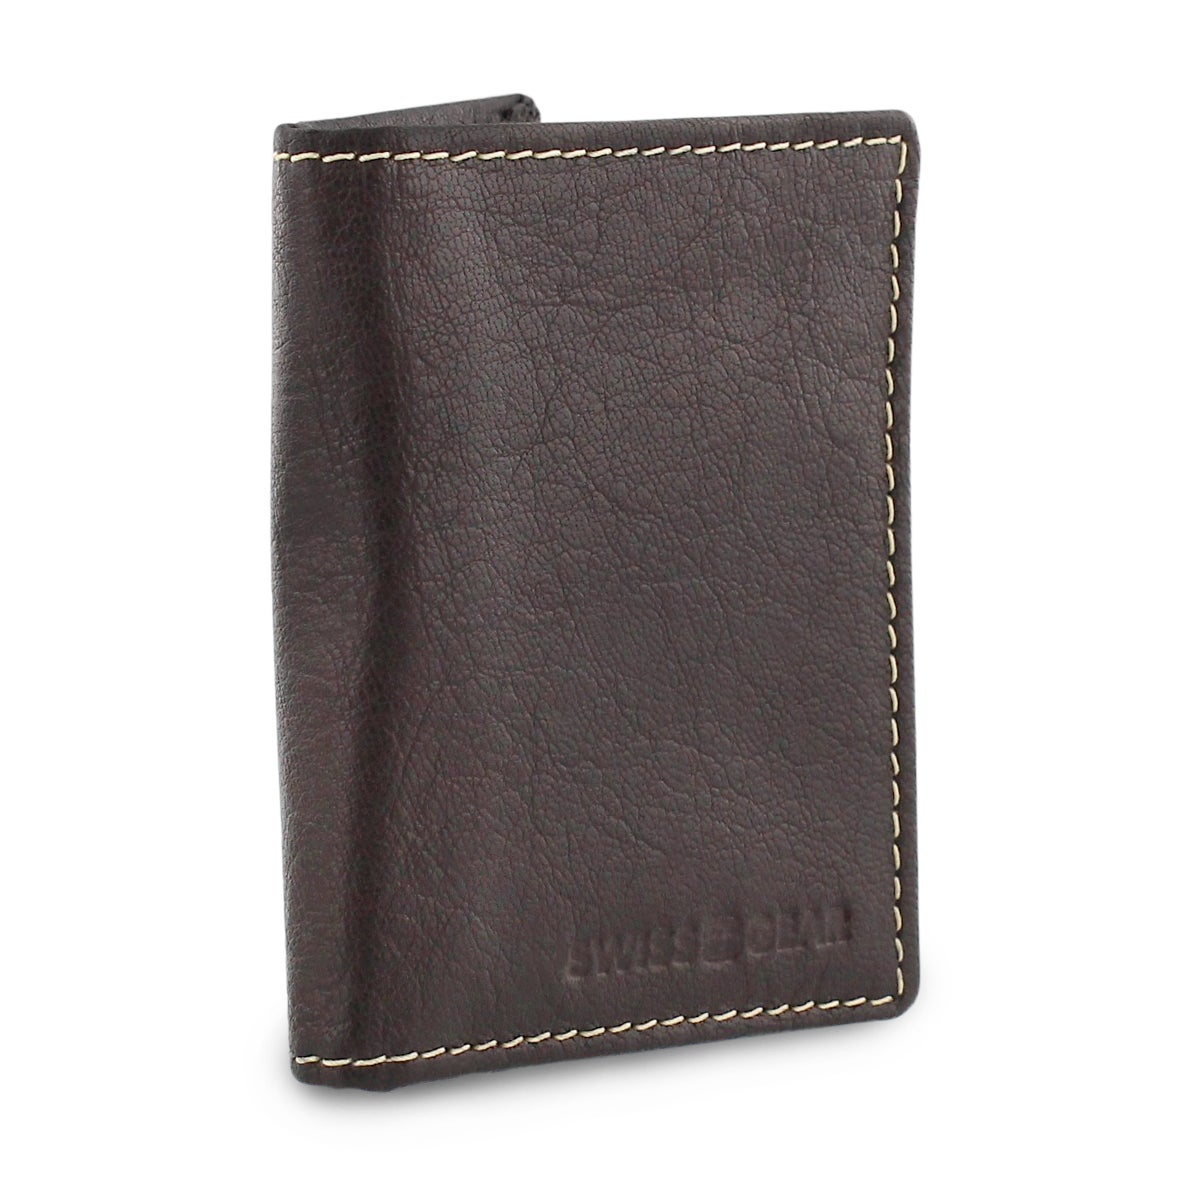 Mns brown slim card case wallet